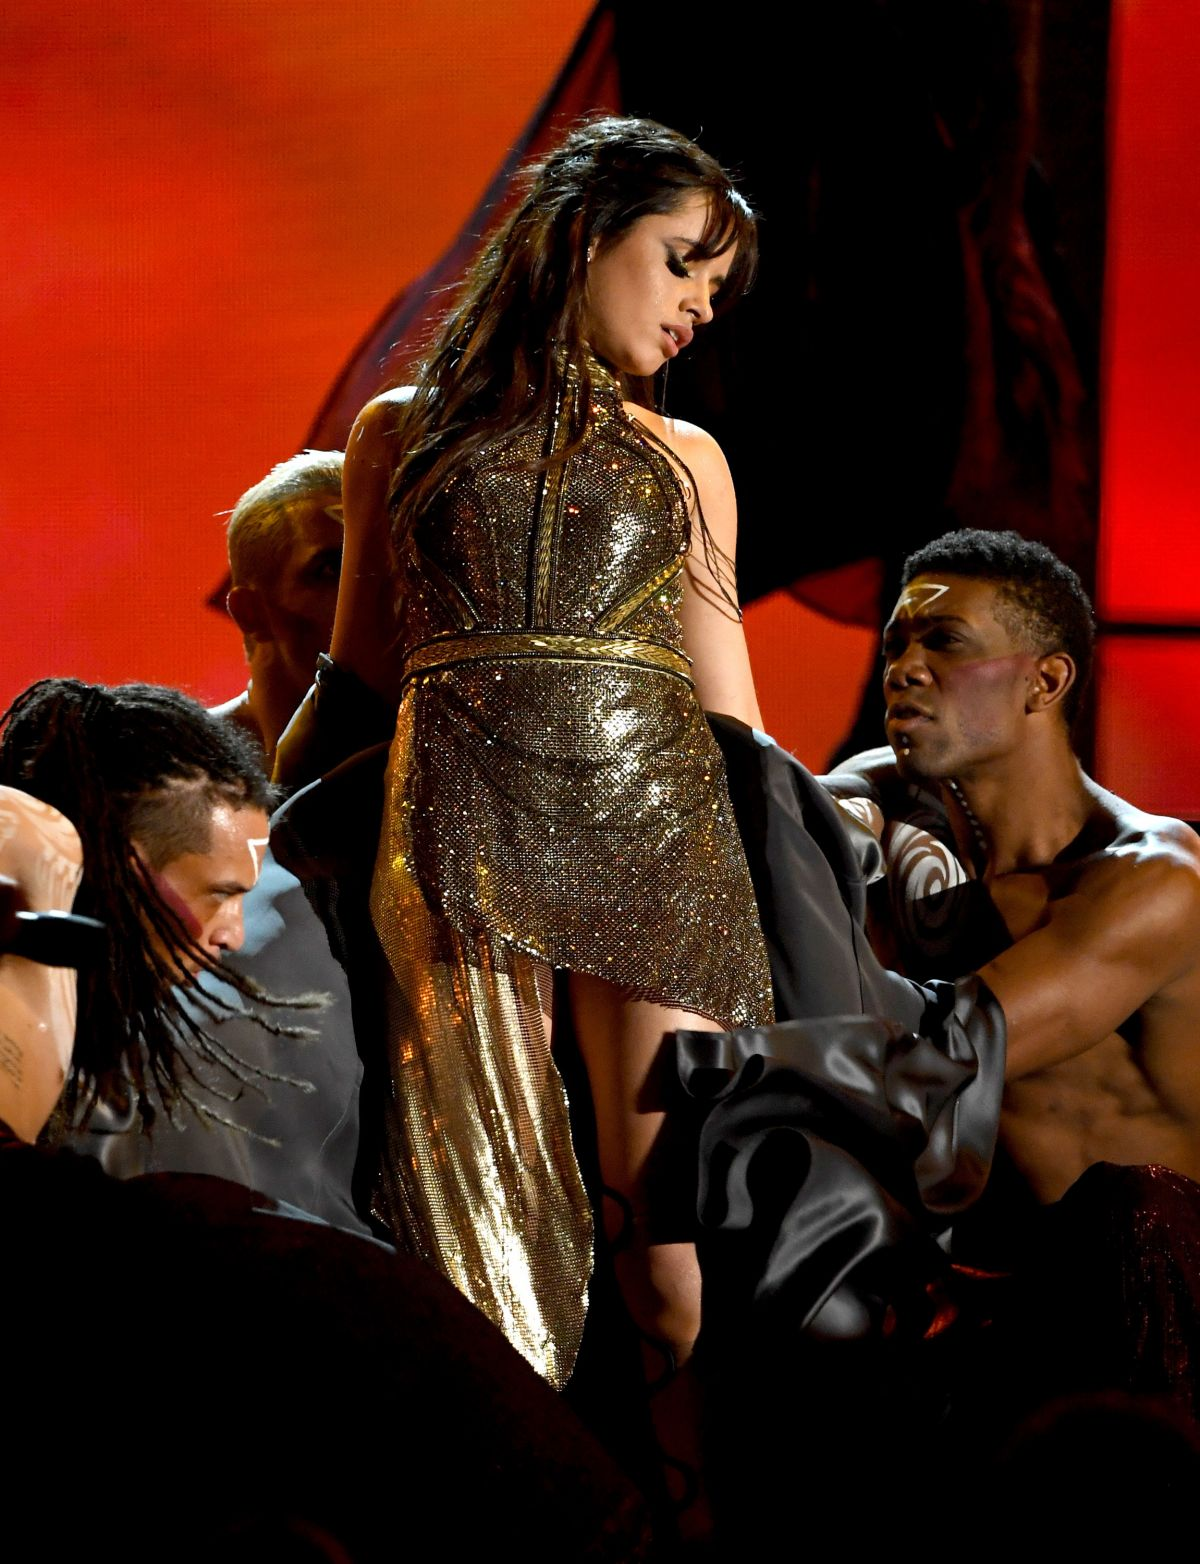 camila cabello performs at 2017 billboard music awards in. Black Bedroom Furniture Sets. Home Design Ideas